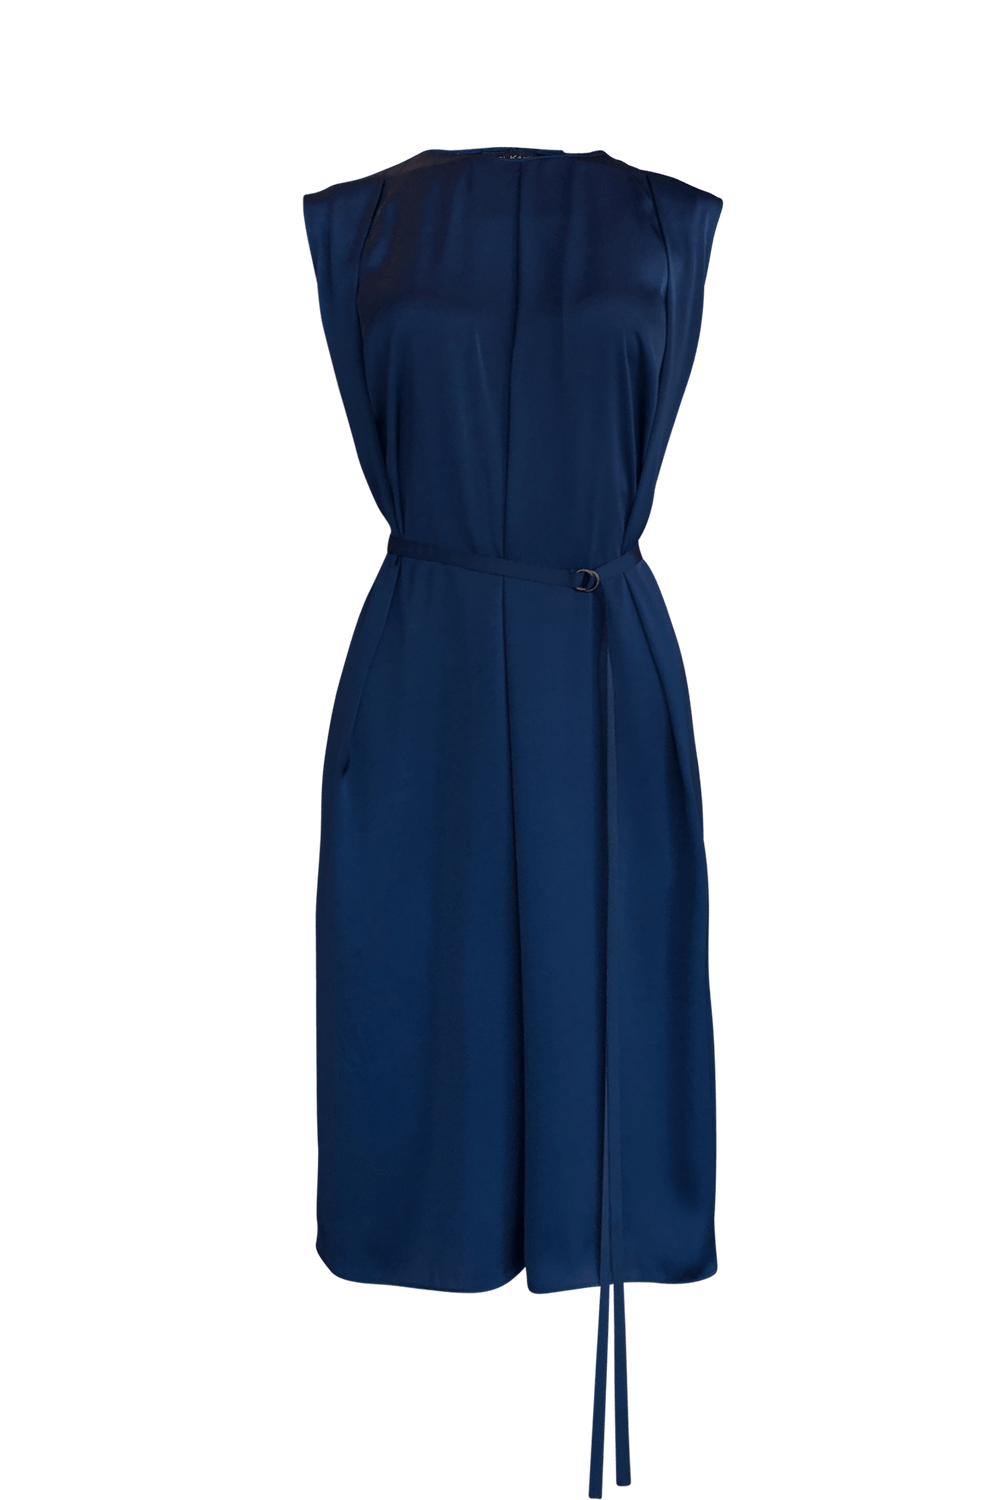 Fashion Designer CARL KAPP collection | Reunion Onesize Fits All cocktail dress Navy | Sydney Australia